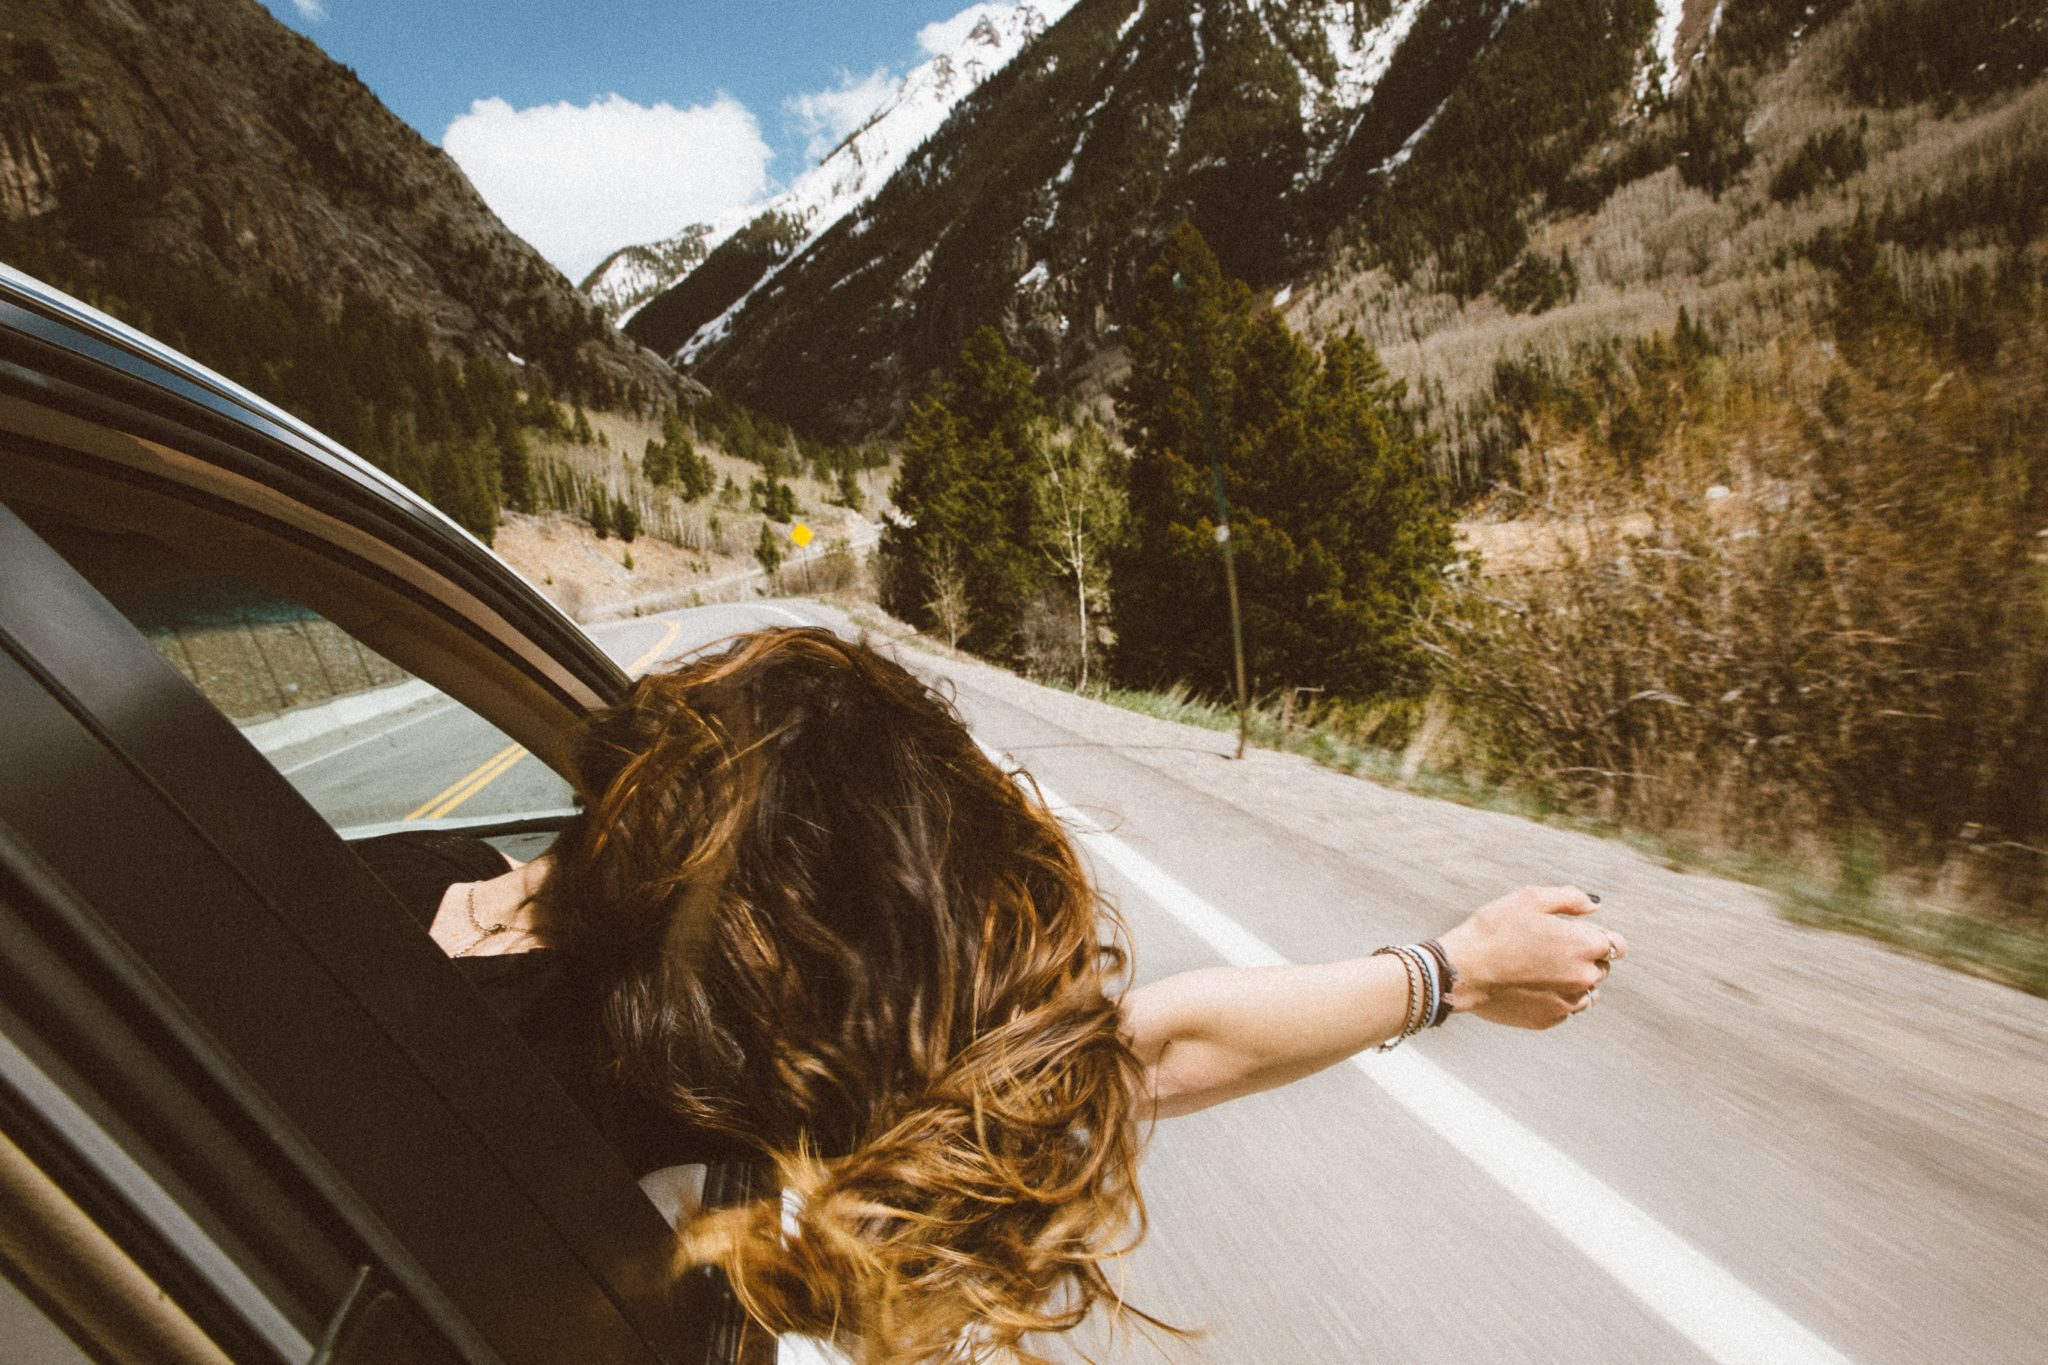 , GOING ON A ROAD TRIP? HERE'S YOUR PACKING LIST